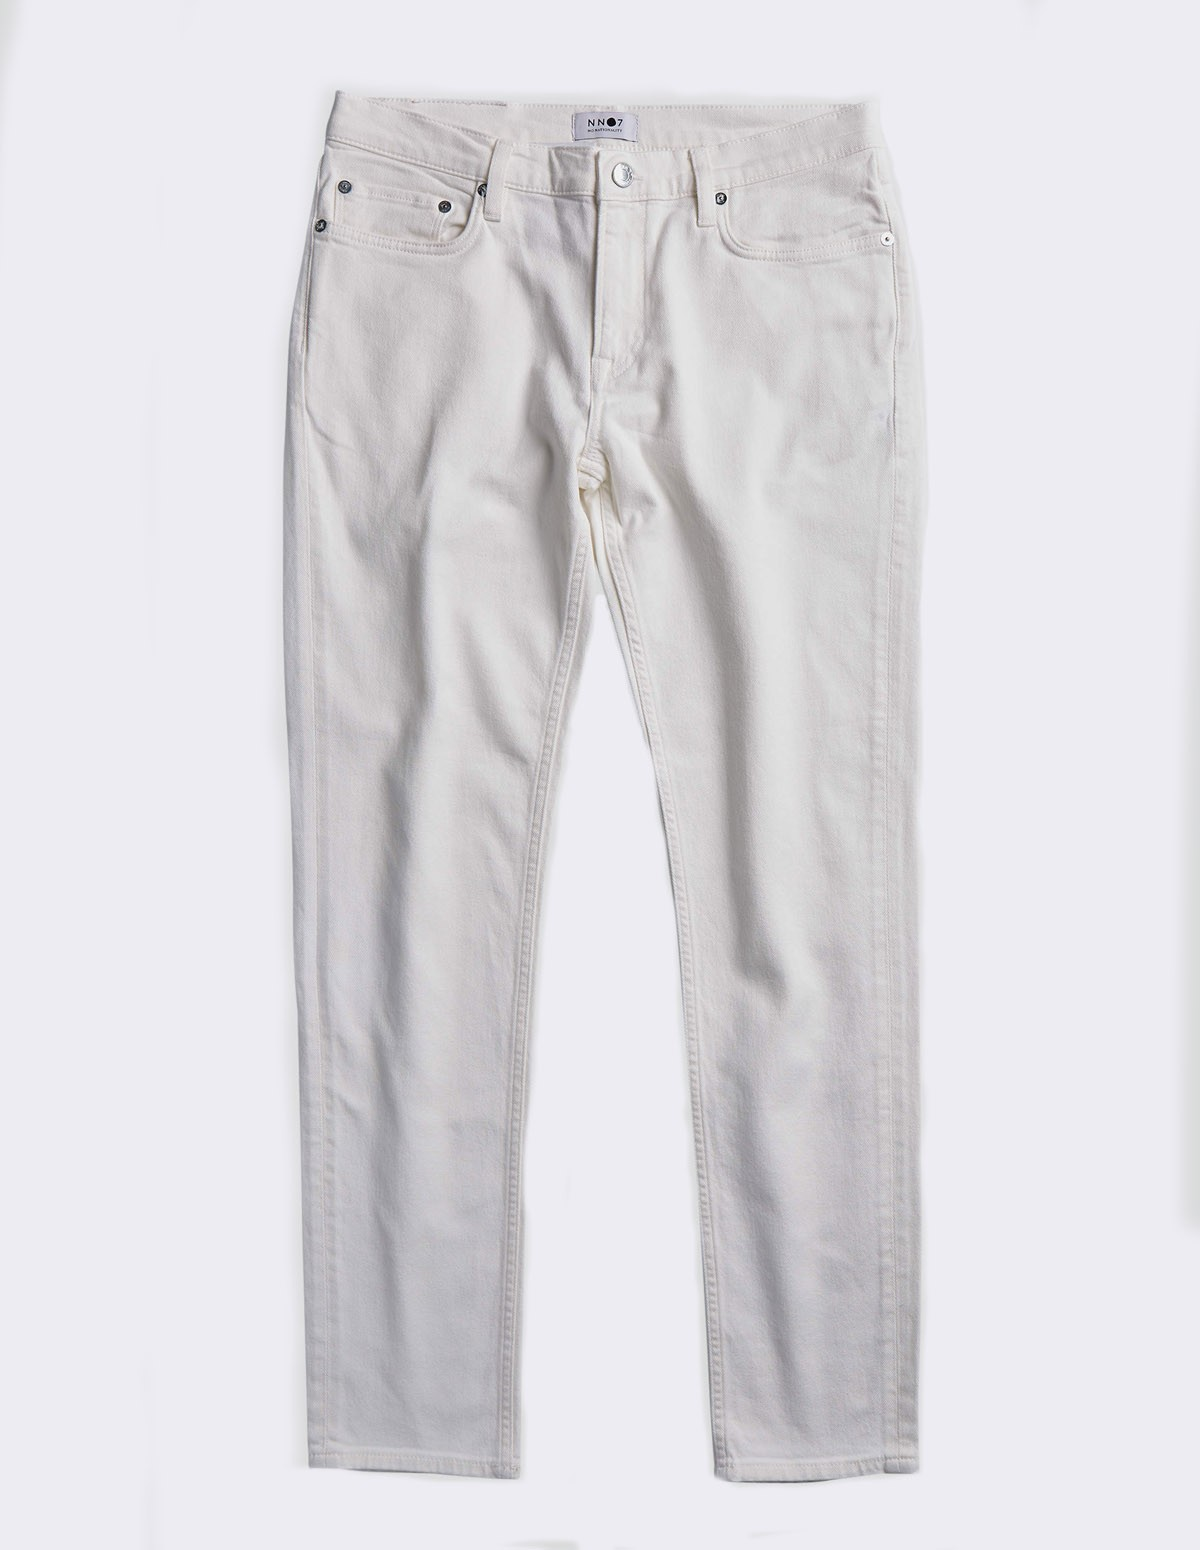 Nn07 Johnny 1835 Denim - OFFWHITE 002